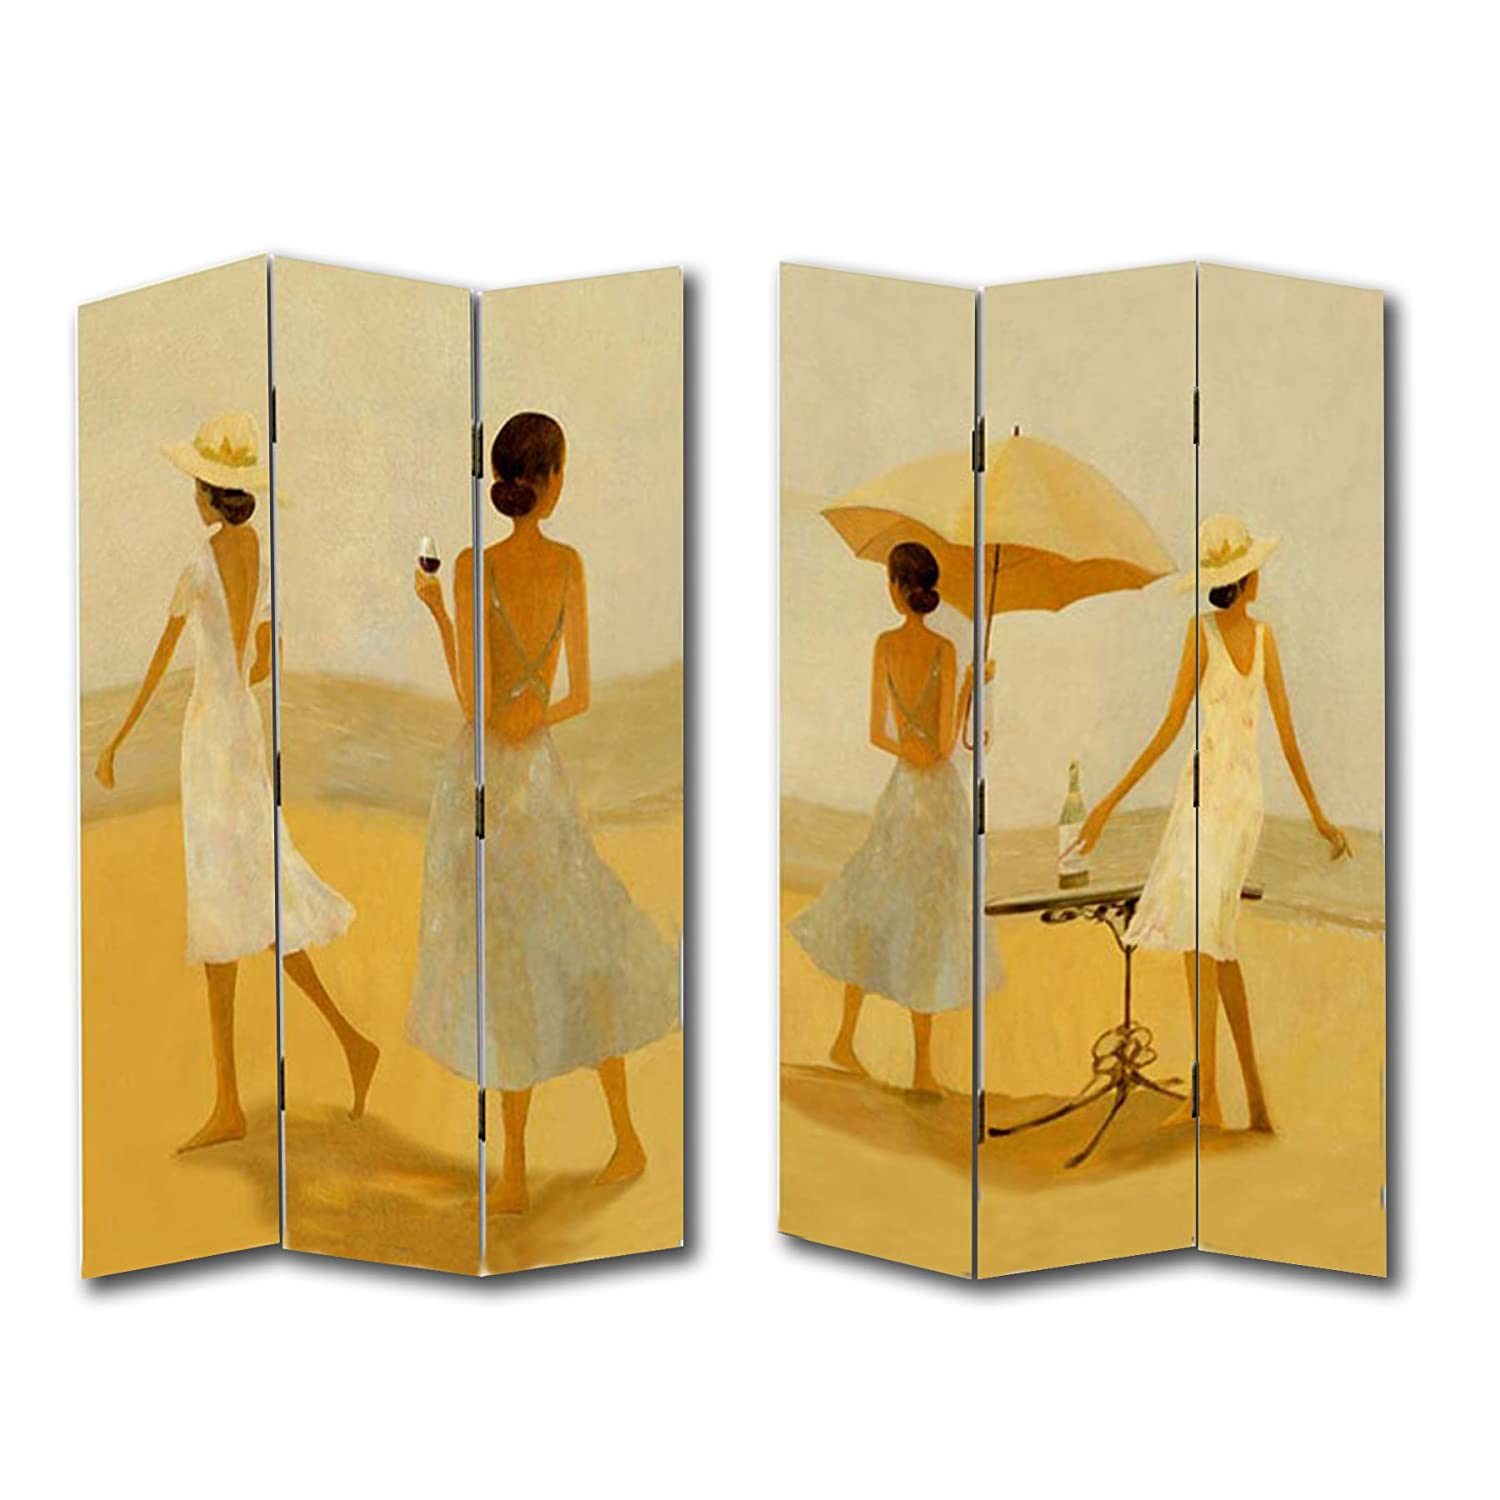 6ft tall 3 panel 2 fold wine by the beach room divider canvas